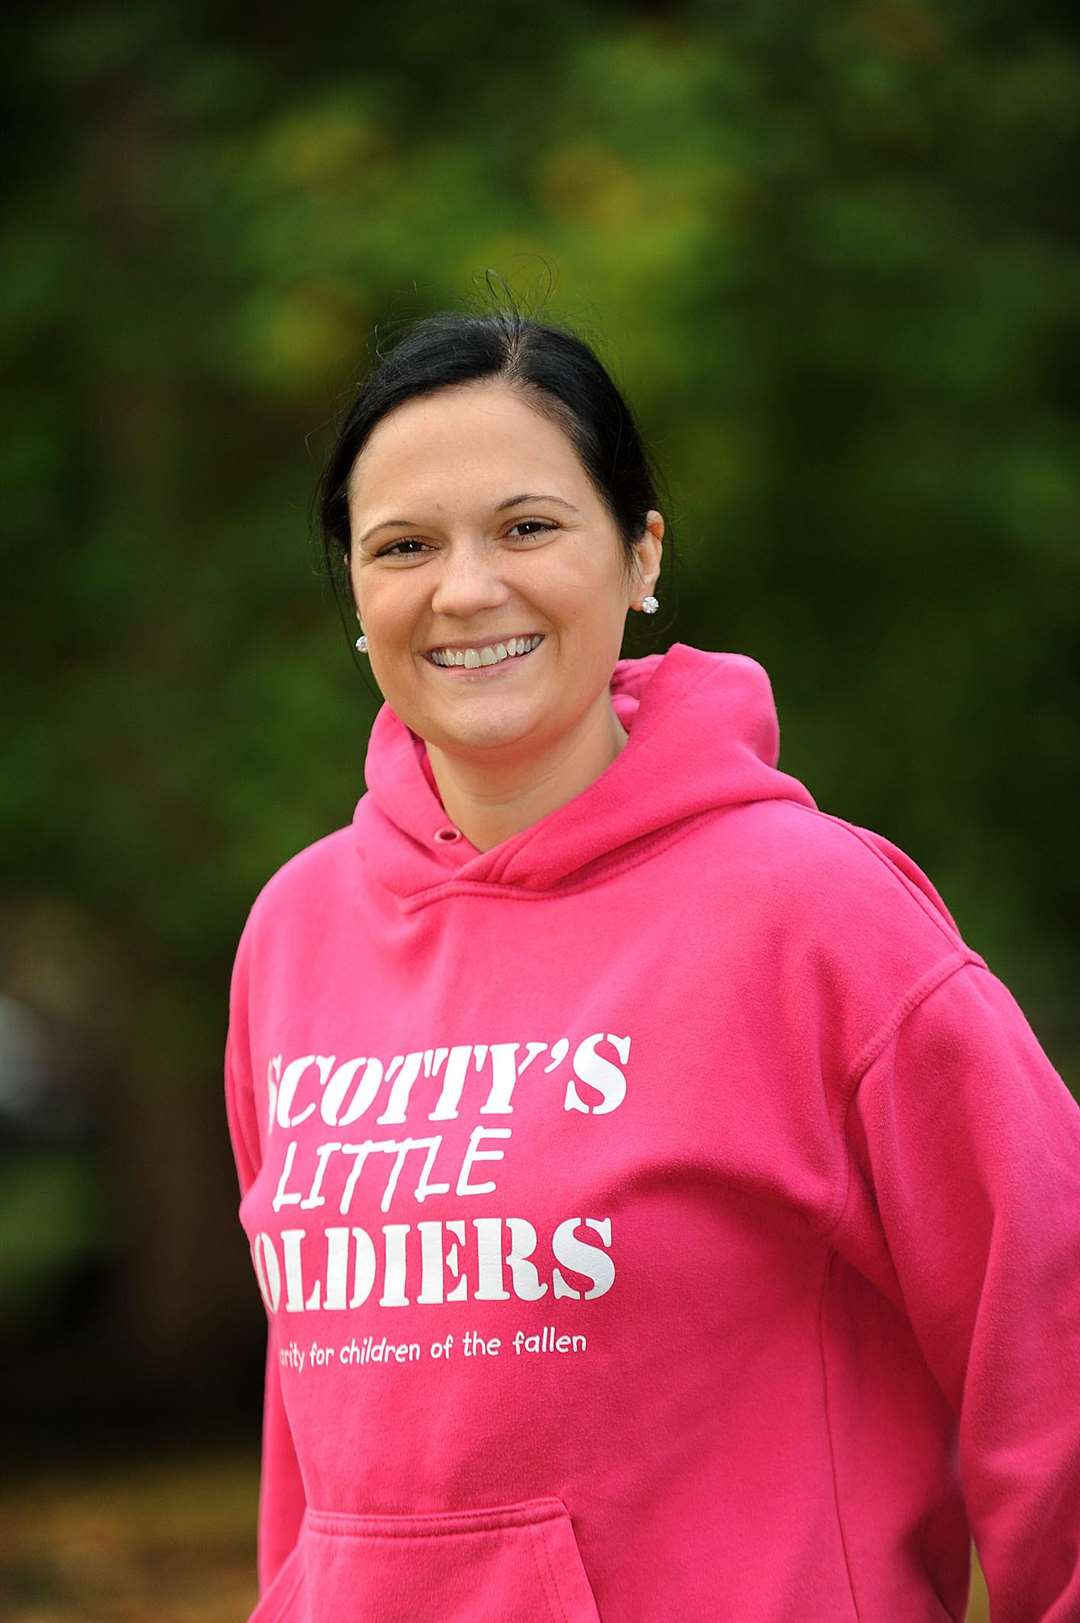 Scotty's Little Soldiers charity founder Nikki Scott. (5607084)